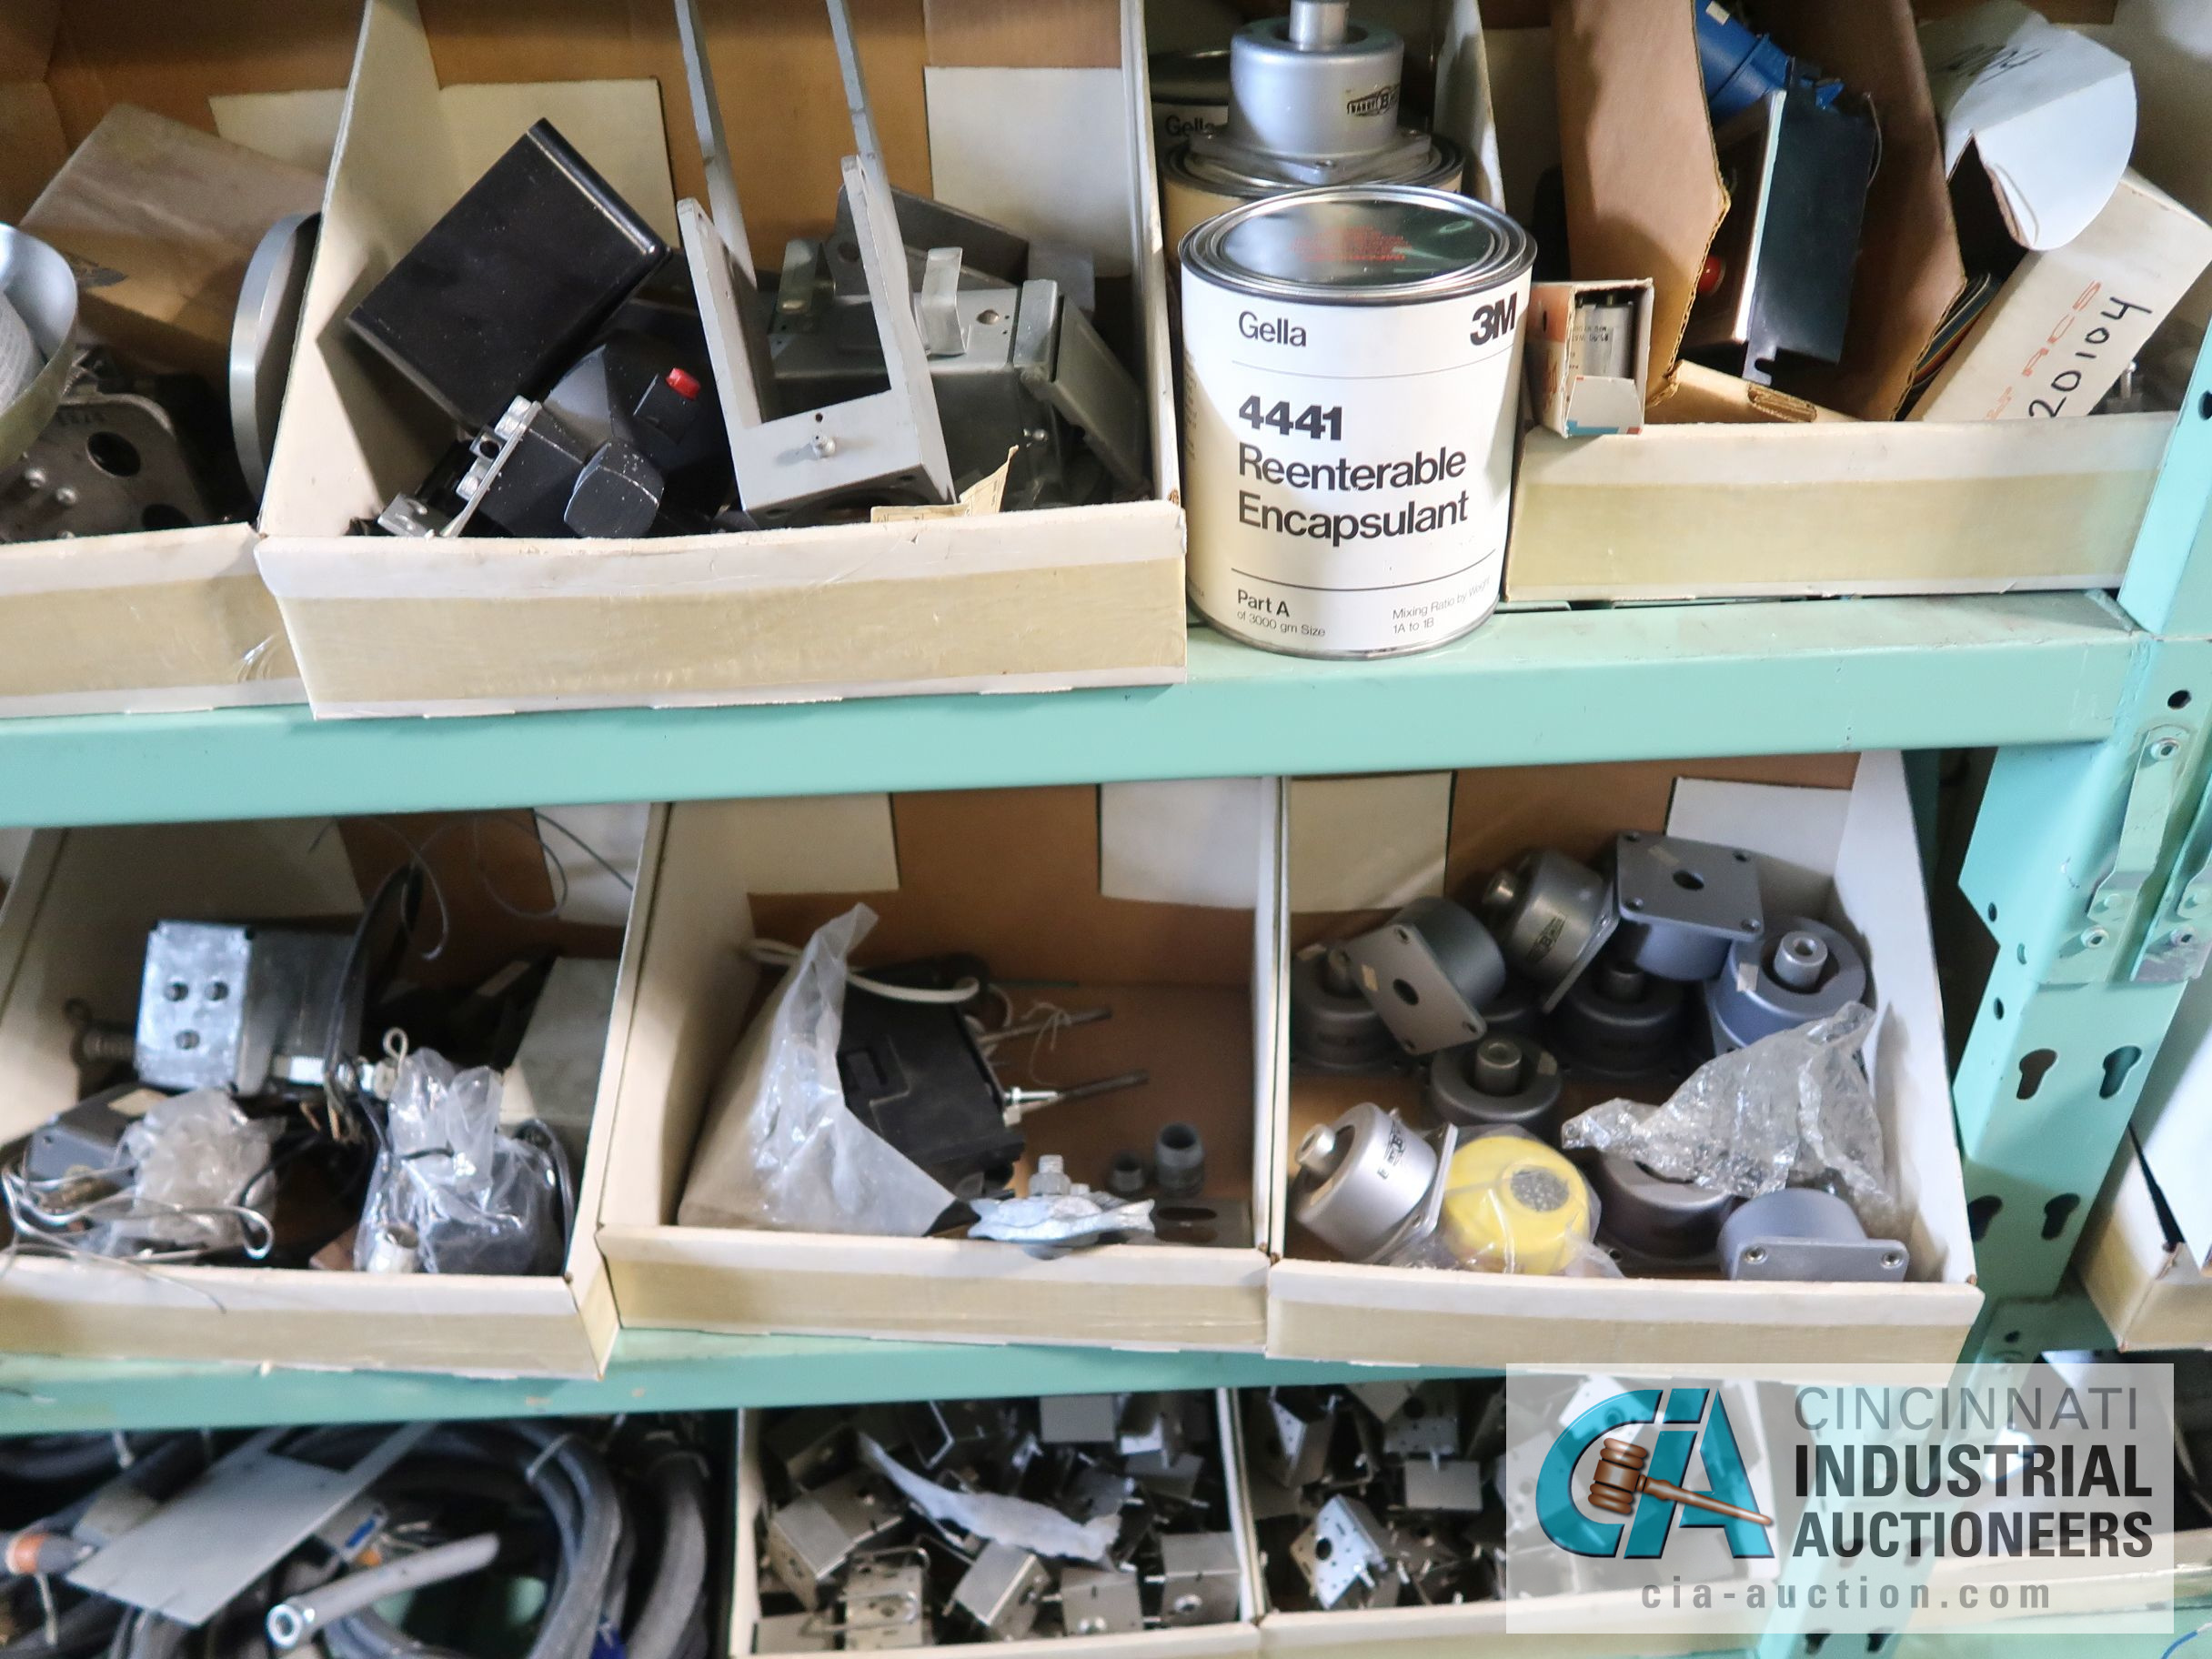 CONTENTS OF (6) RACKS INCLUDING MISCELLANEOUS AUTOMOTIVE PARTS, BREAKS, ROTORS, GASKETS, MOUNTING - Image 14 of 38